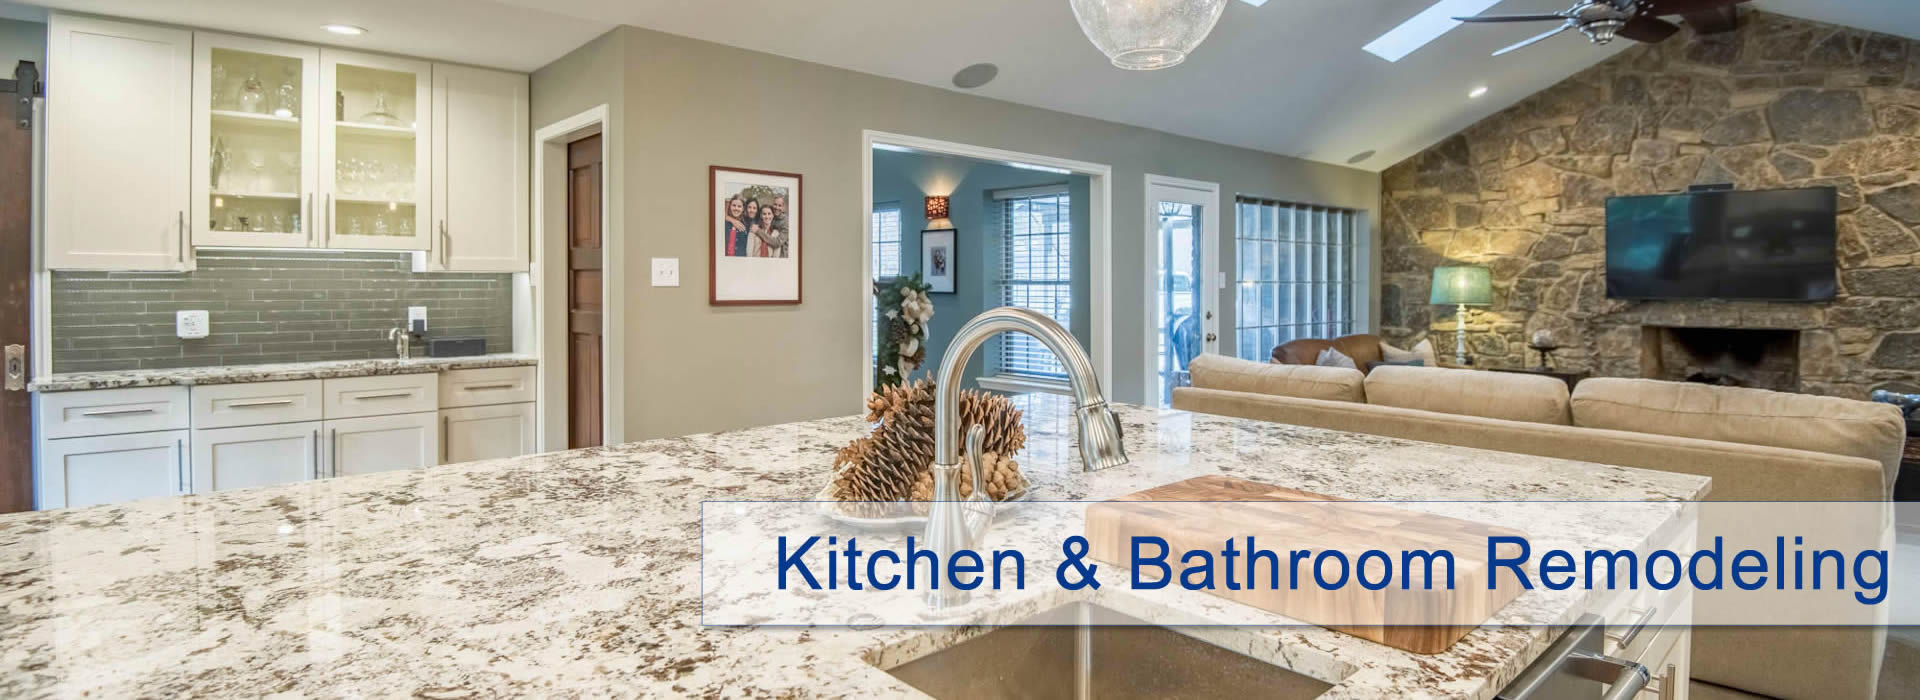 Kitchen Bathroom Remodel Dallas